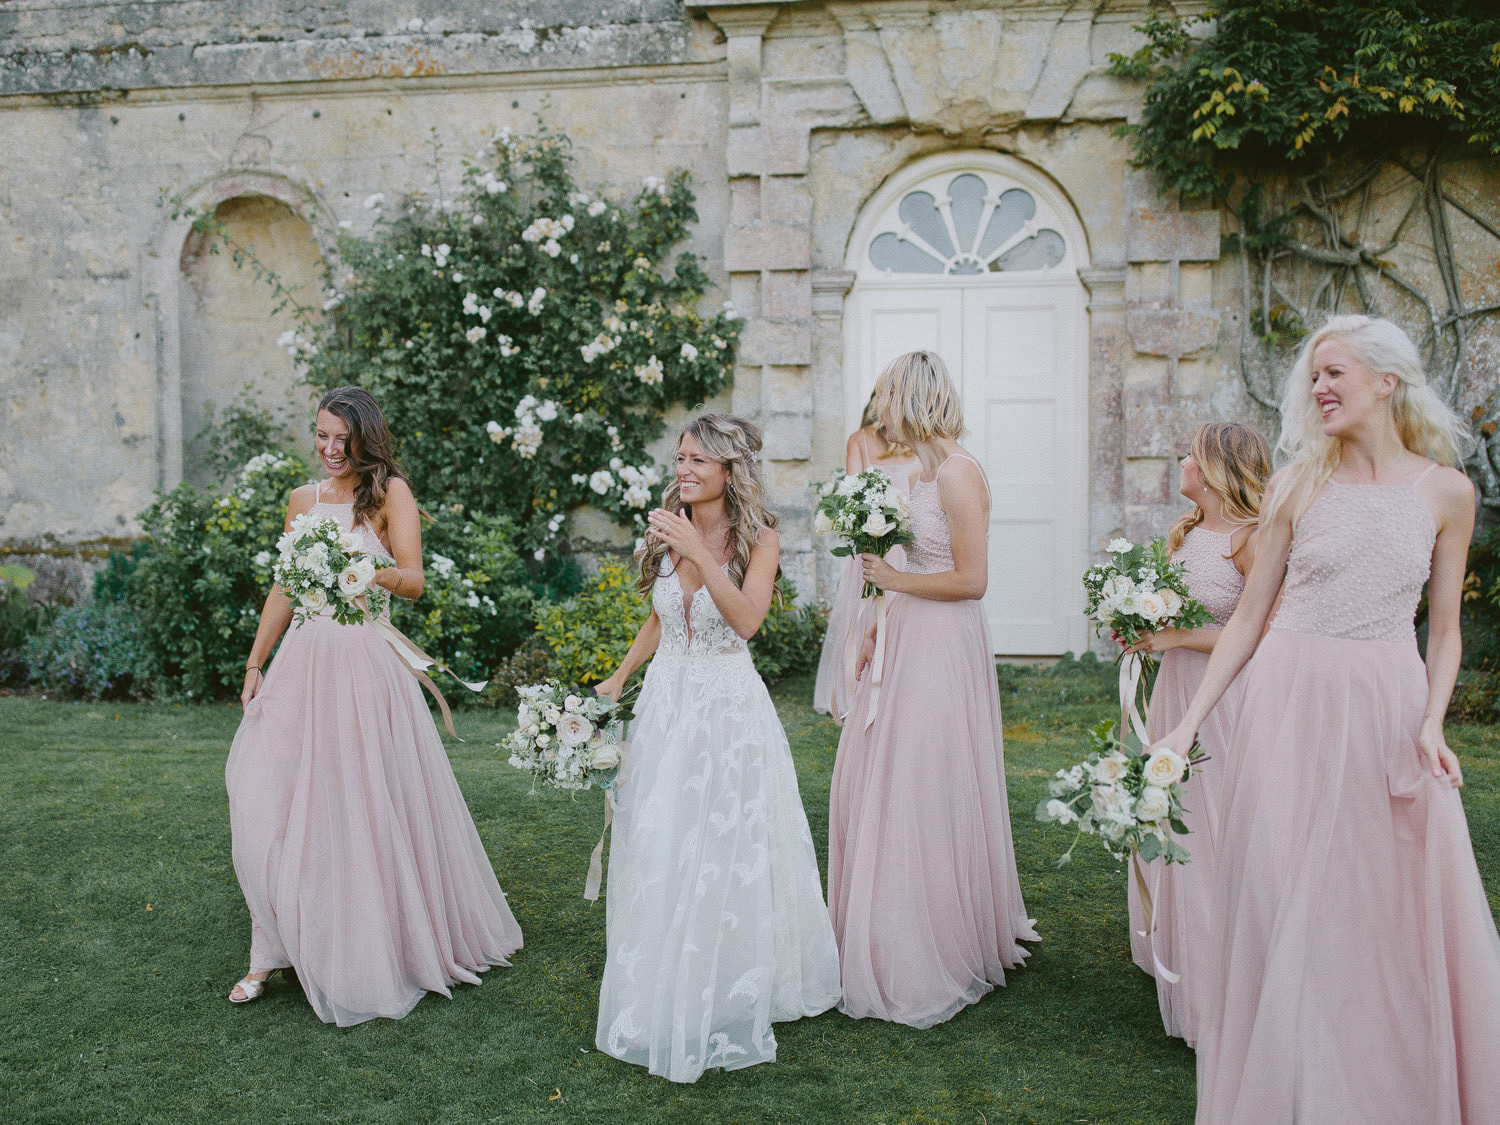 bridesmaid in blush pink dress walking with bride next to garden wall